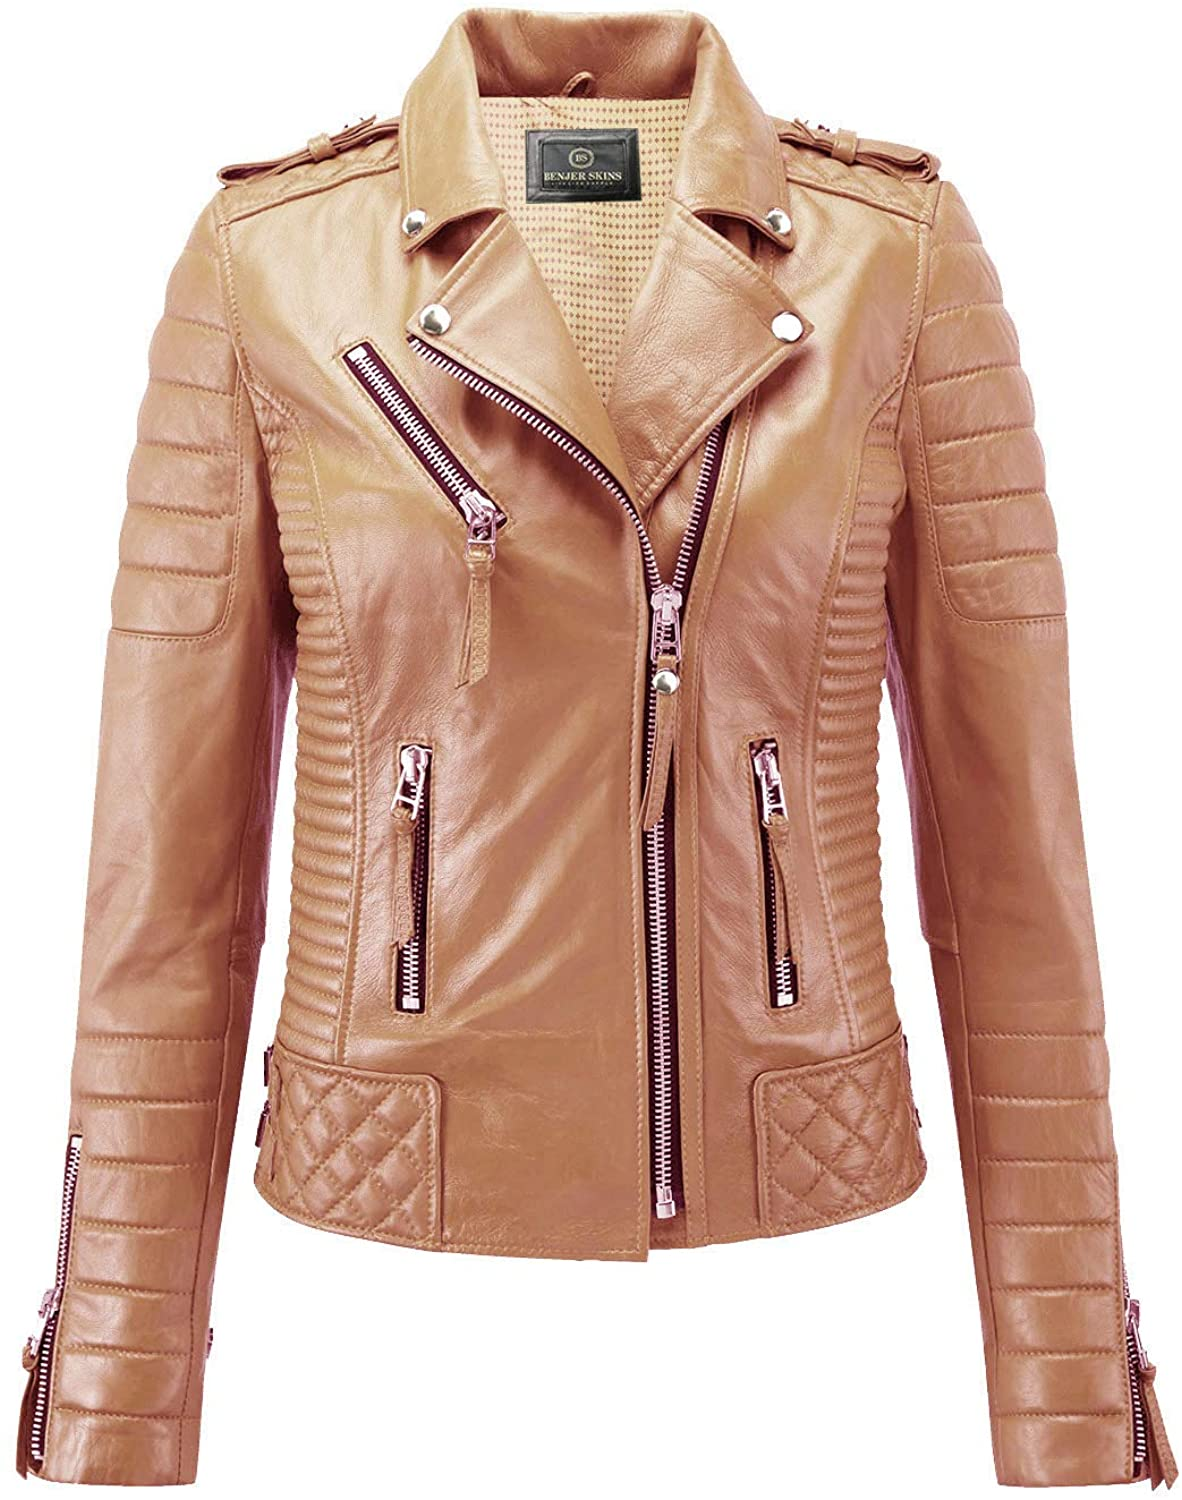 Benjer Skins Women's Leather Jacket Motorcycle Racing Cafe Racer Biker Jacket Camel Beige